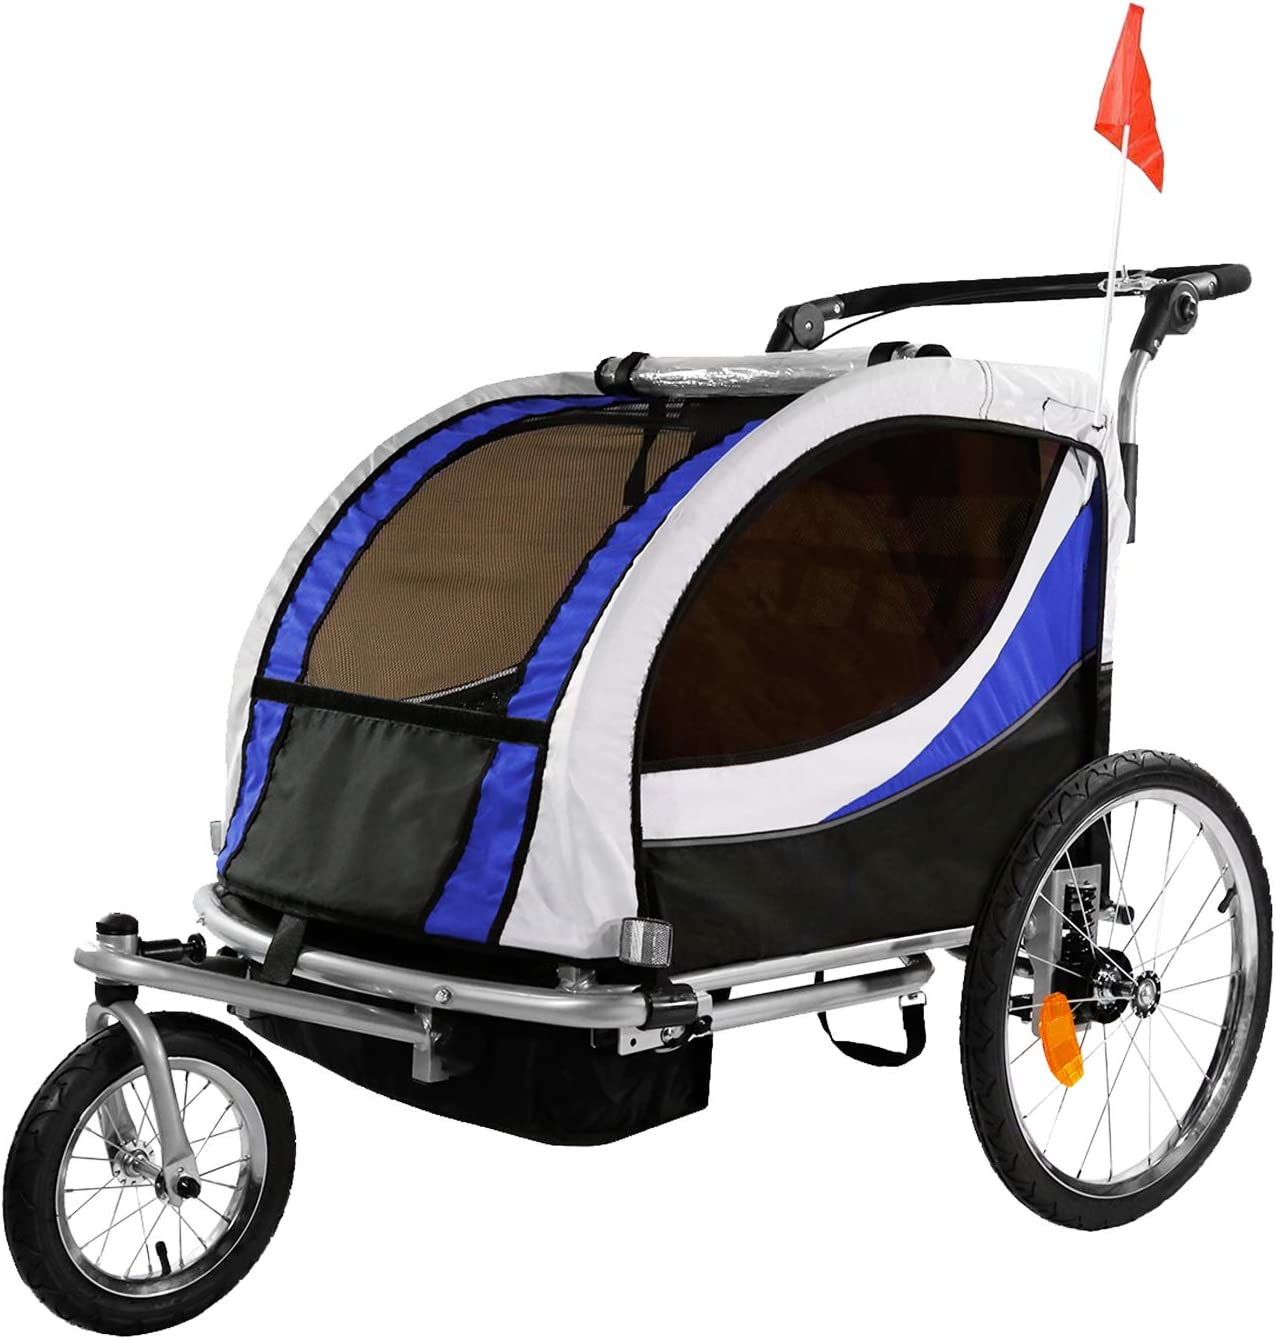 best bike trailer for kids: Clevr Deluxe 3-in-1 Double 2 Seat Bicycle Bike Trailer